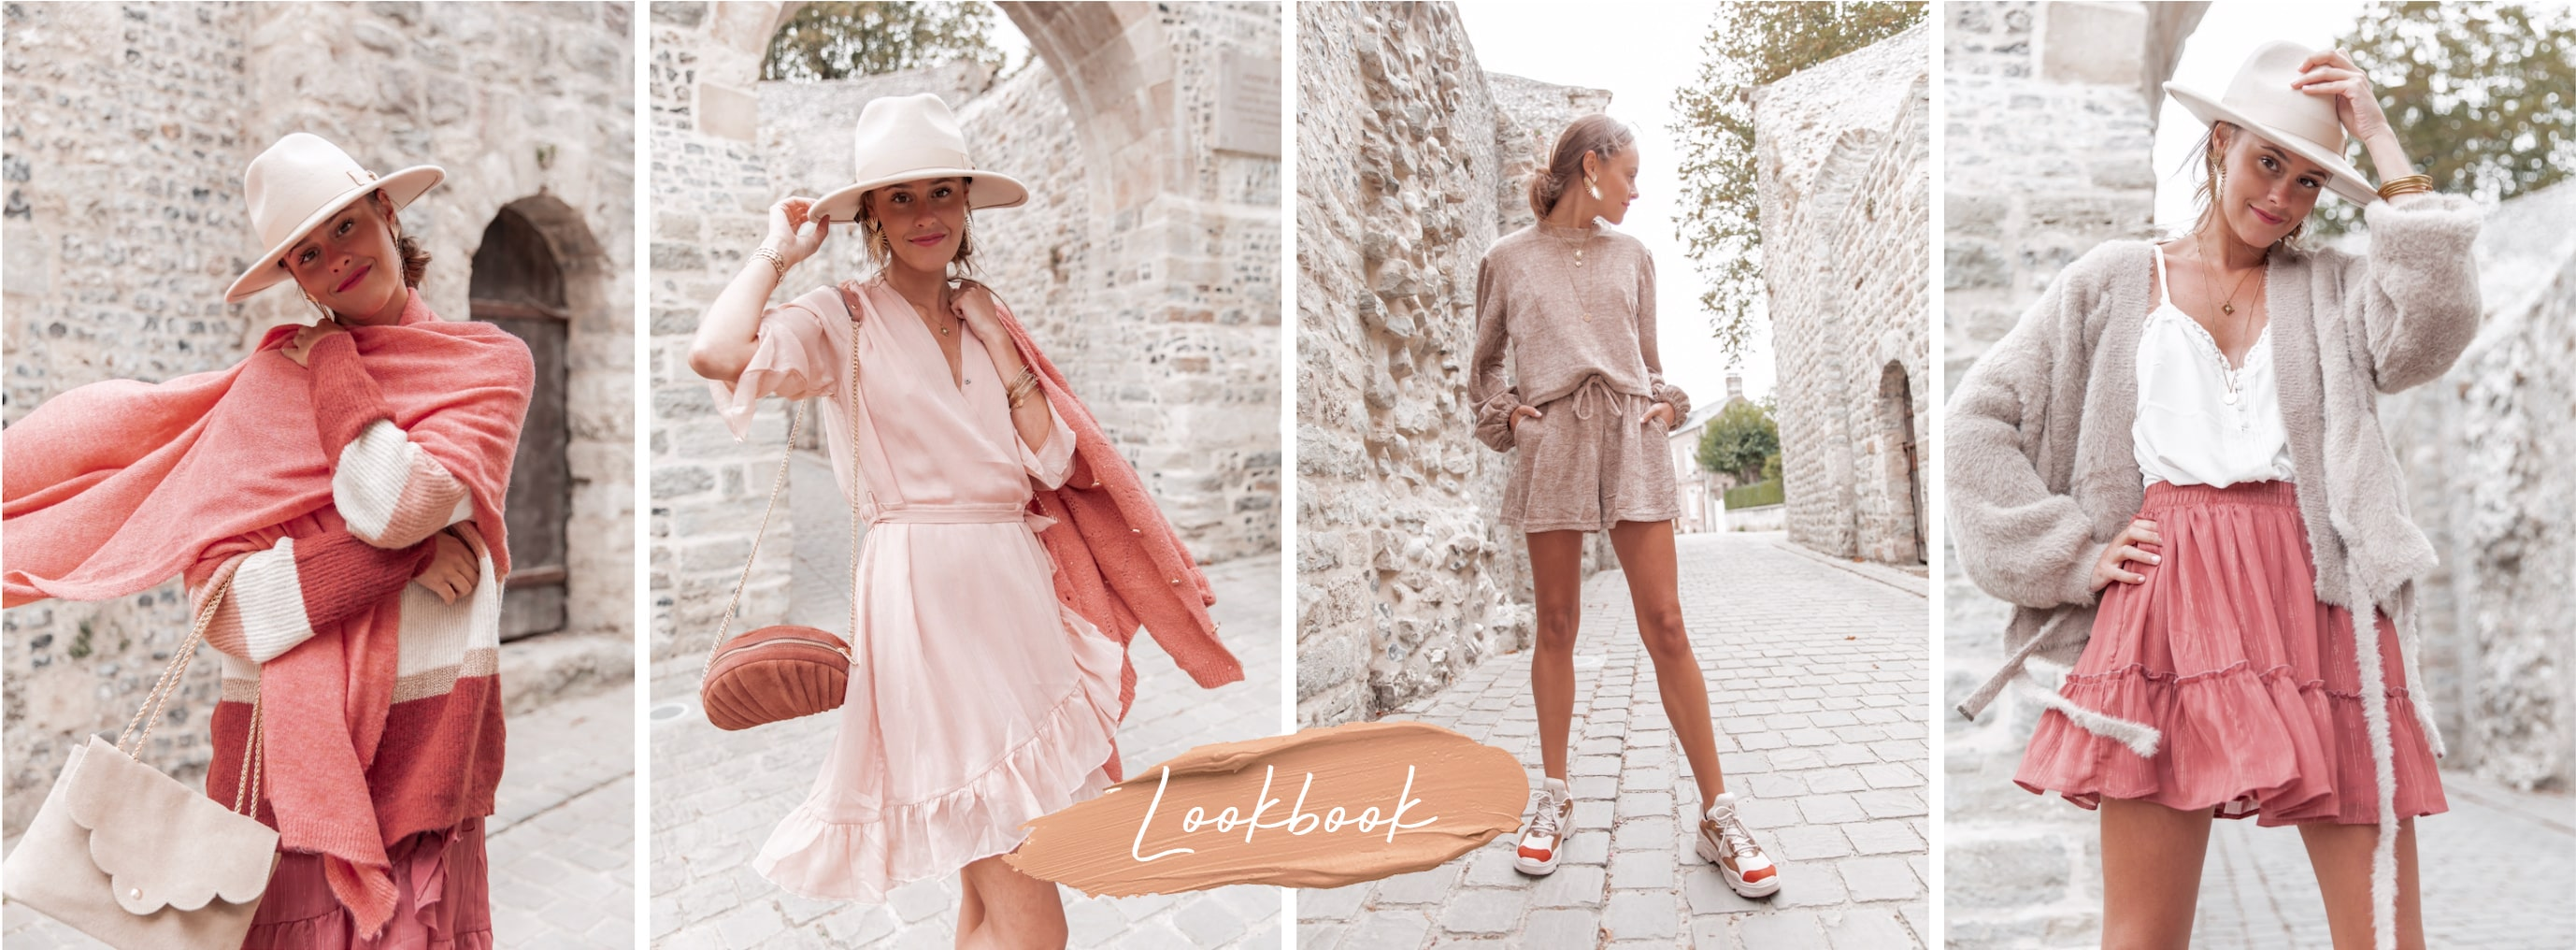 lookbook bohème